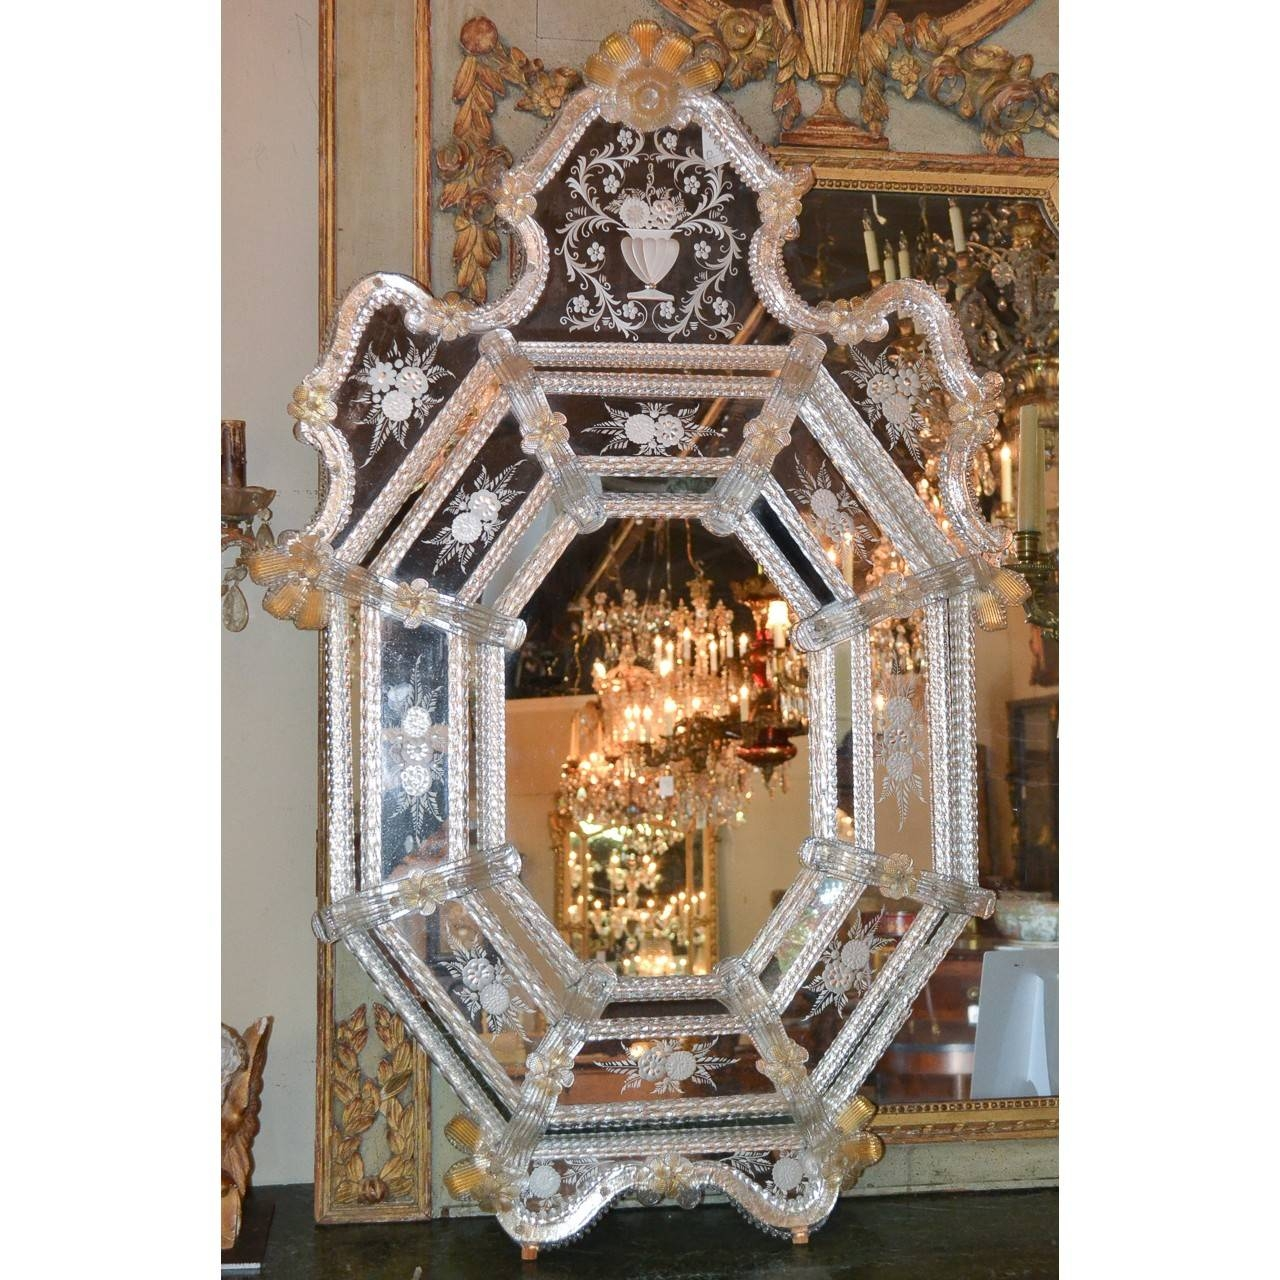 Beautiful Antique Venetian Etched Glass Mirror - Legacy Antiques intended for Antique Venetian Glass Mirrors (Image 12 of 25)